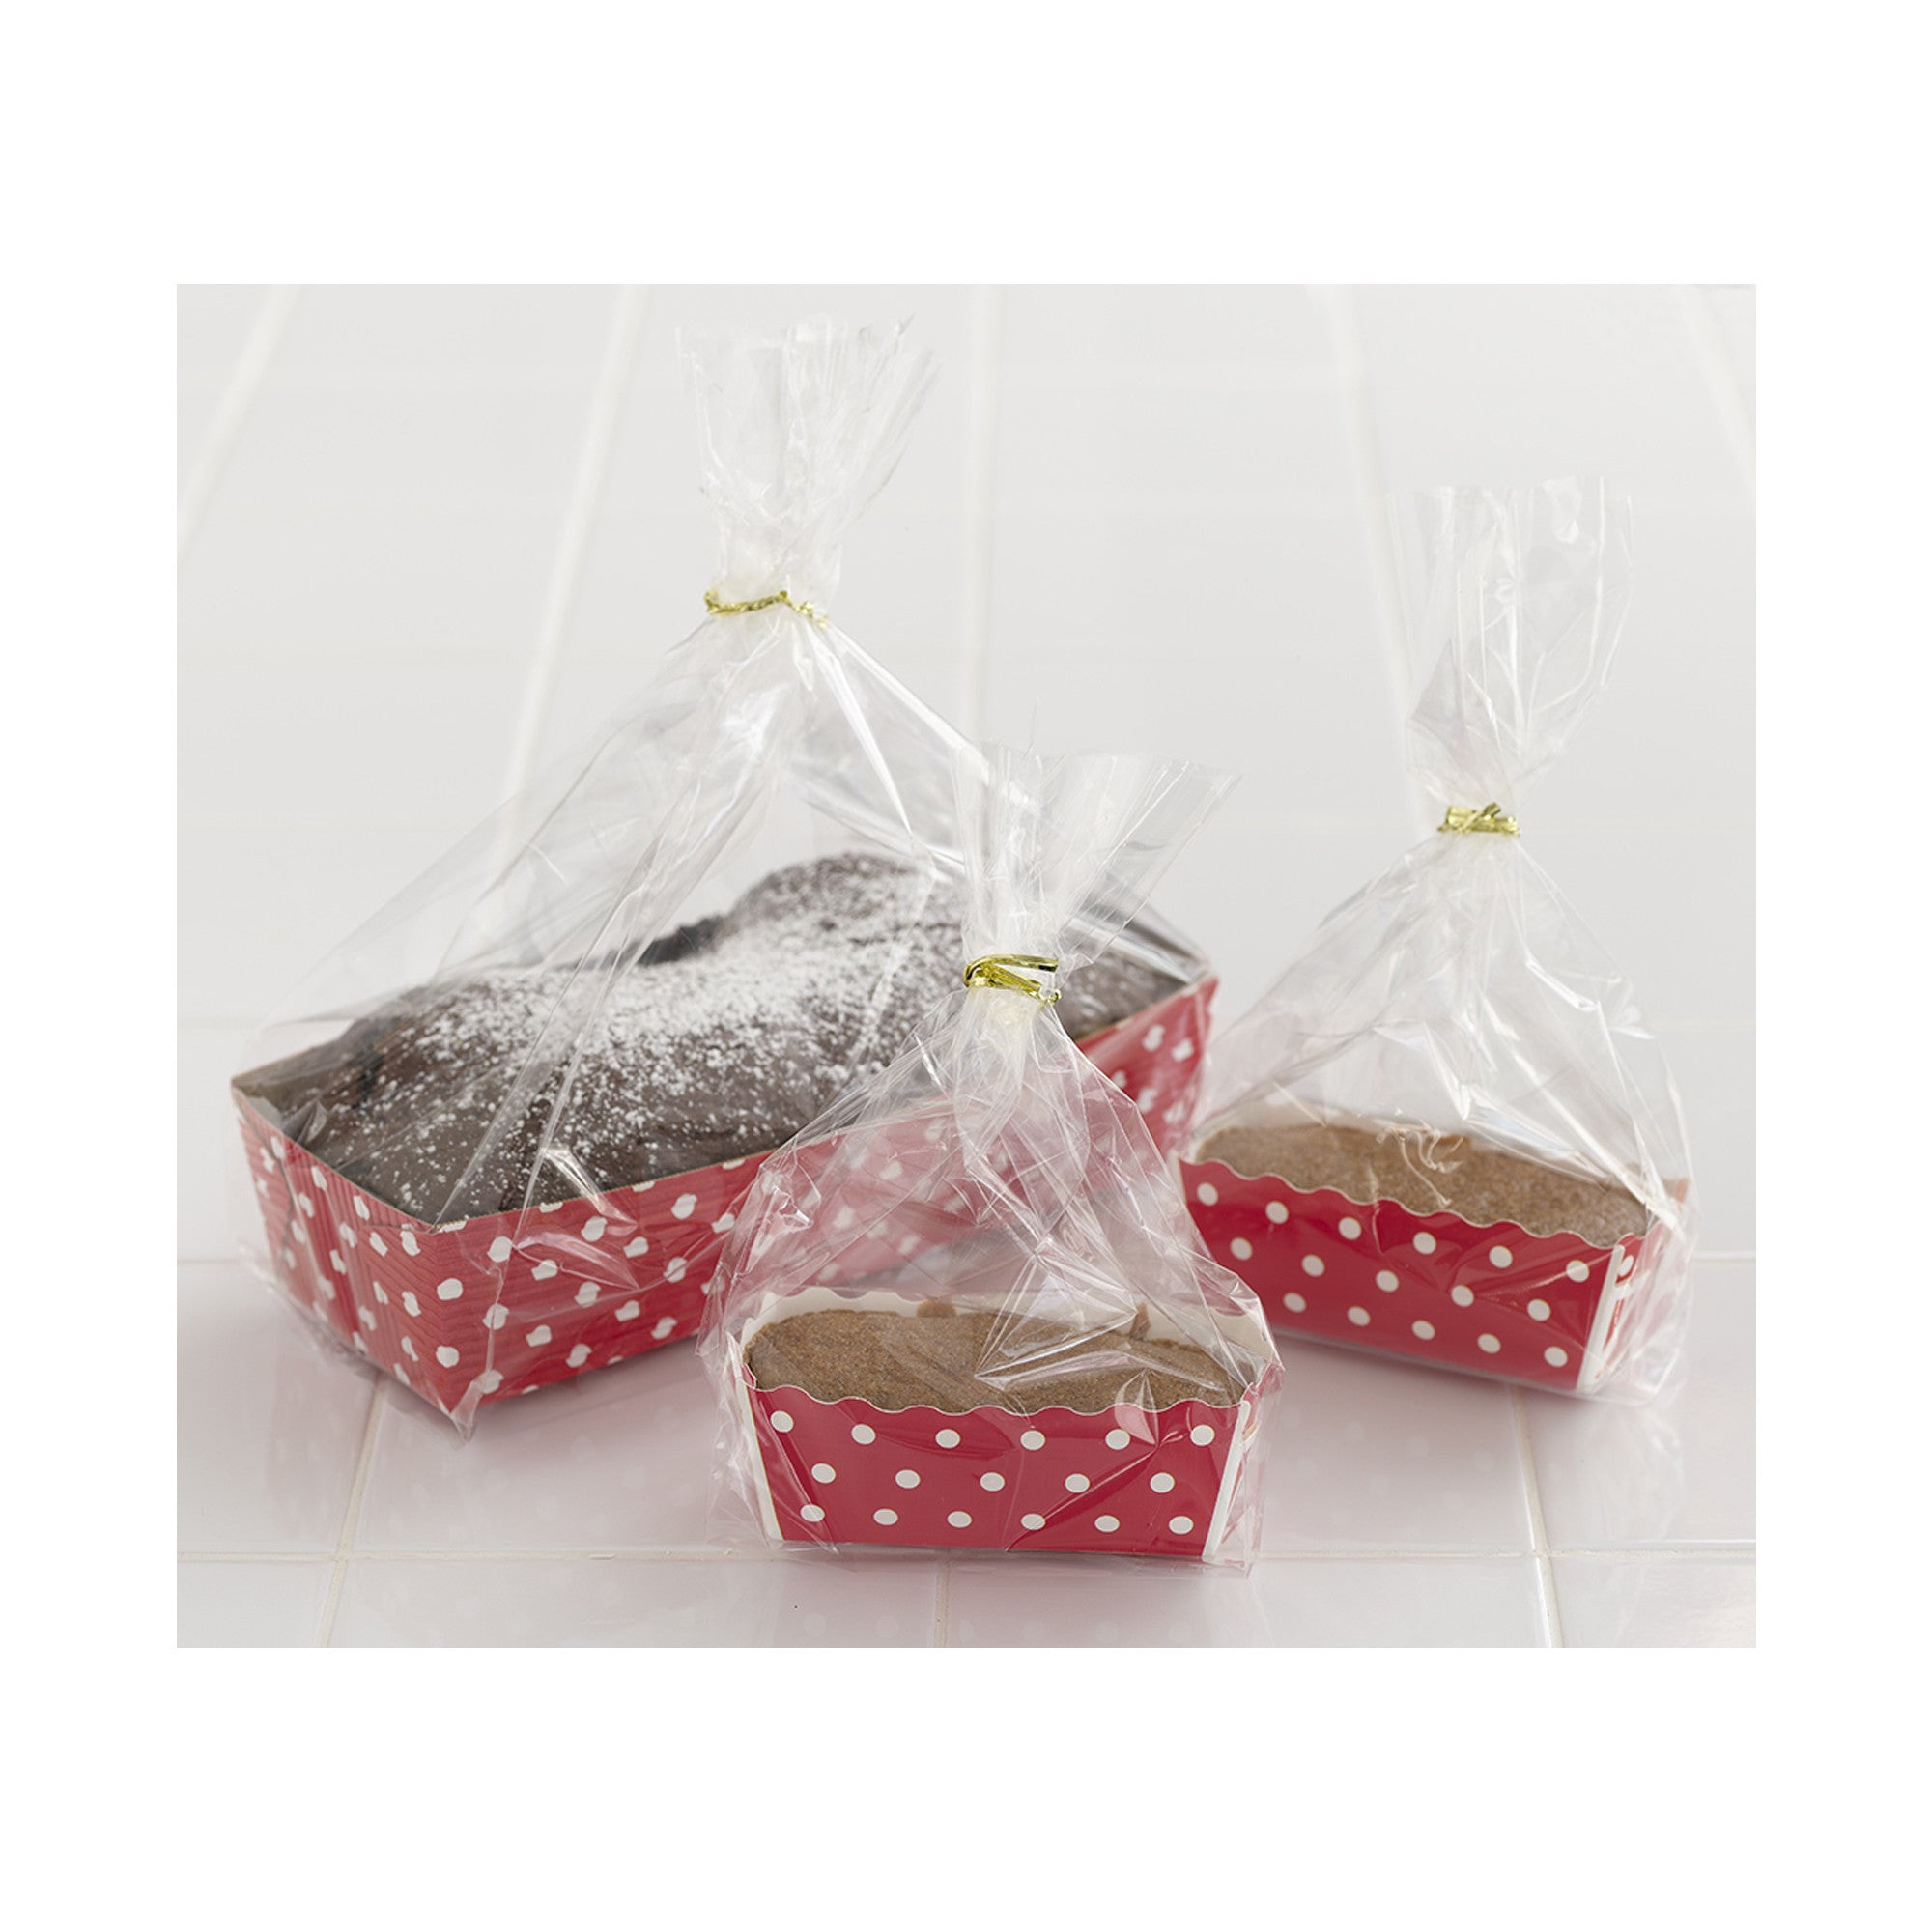 "Bags + Twist Ties, Gift Bags for 4"" Ruffled Cup - Welcome Home Brands"